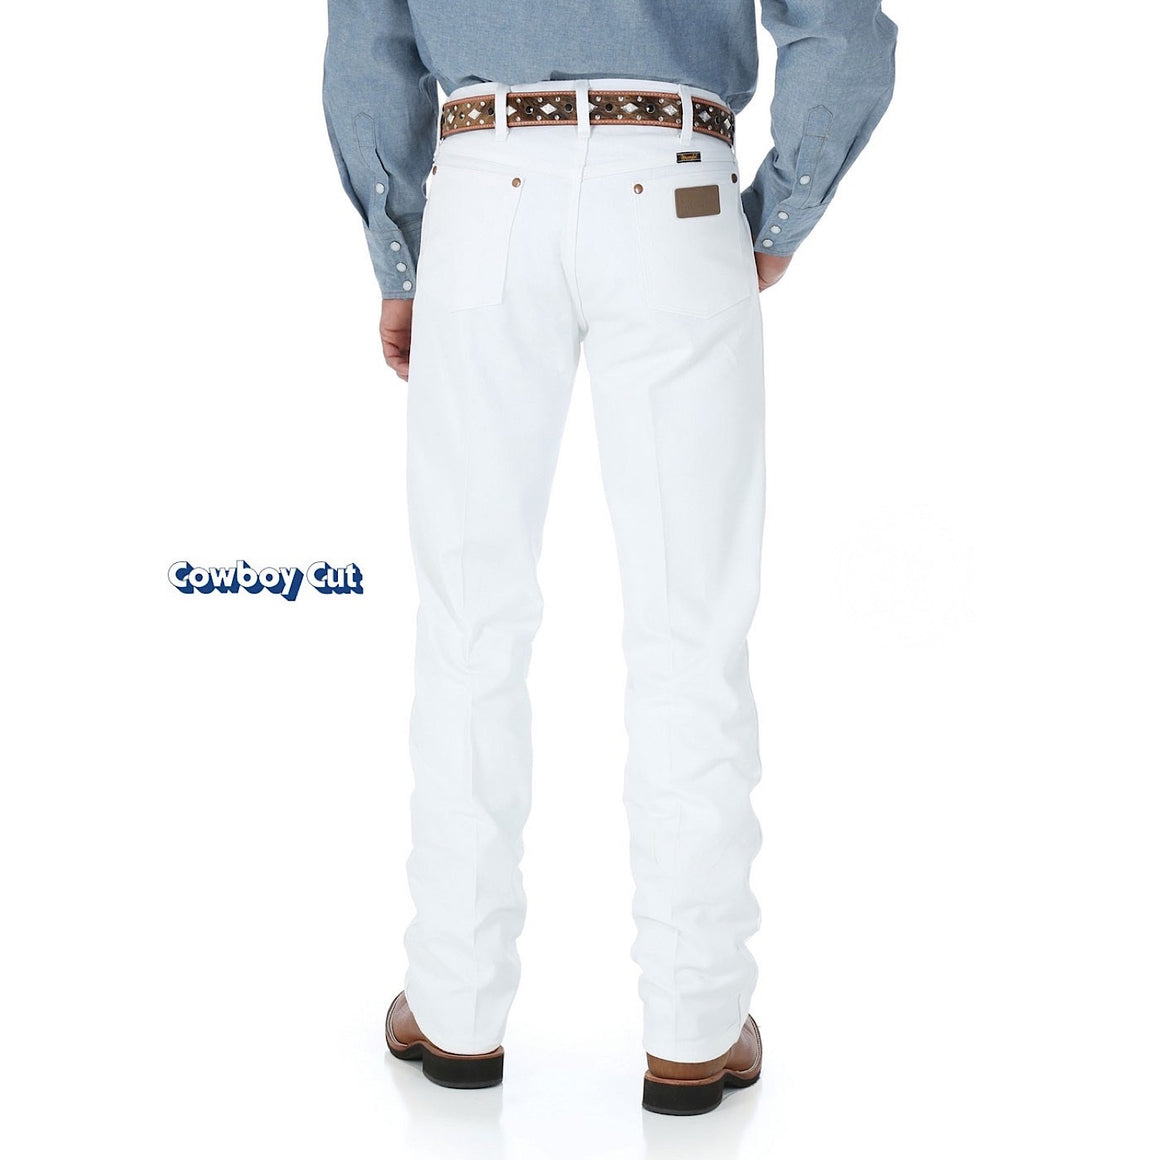 Mens Cowboy Cut Original Fit Jean, Prewashed White - 13MWZWI